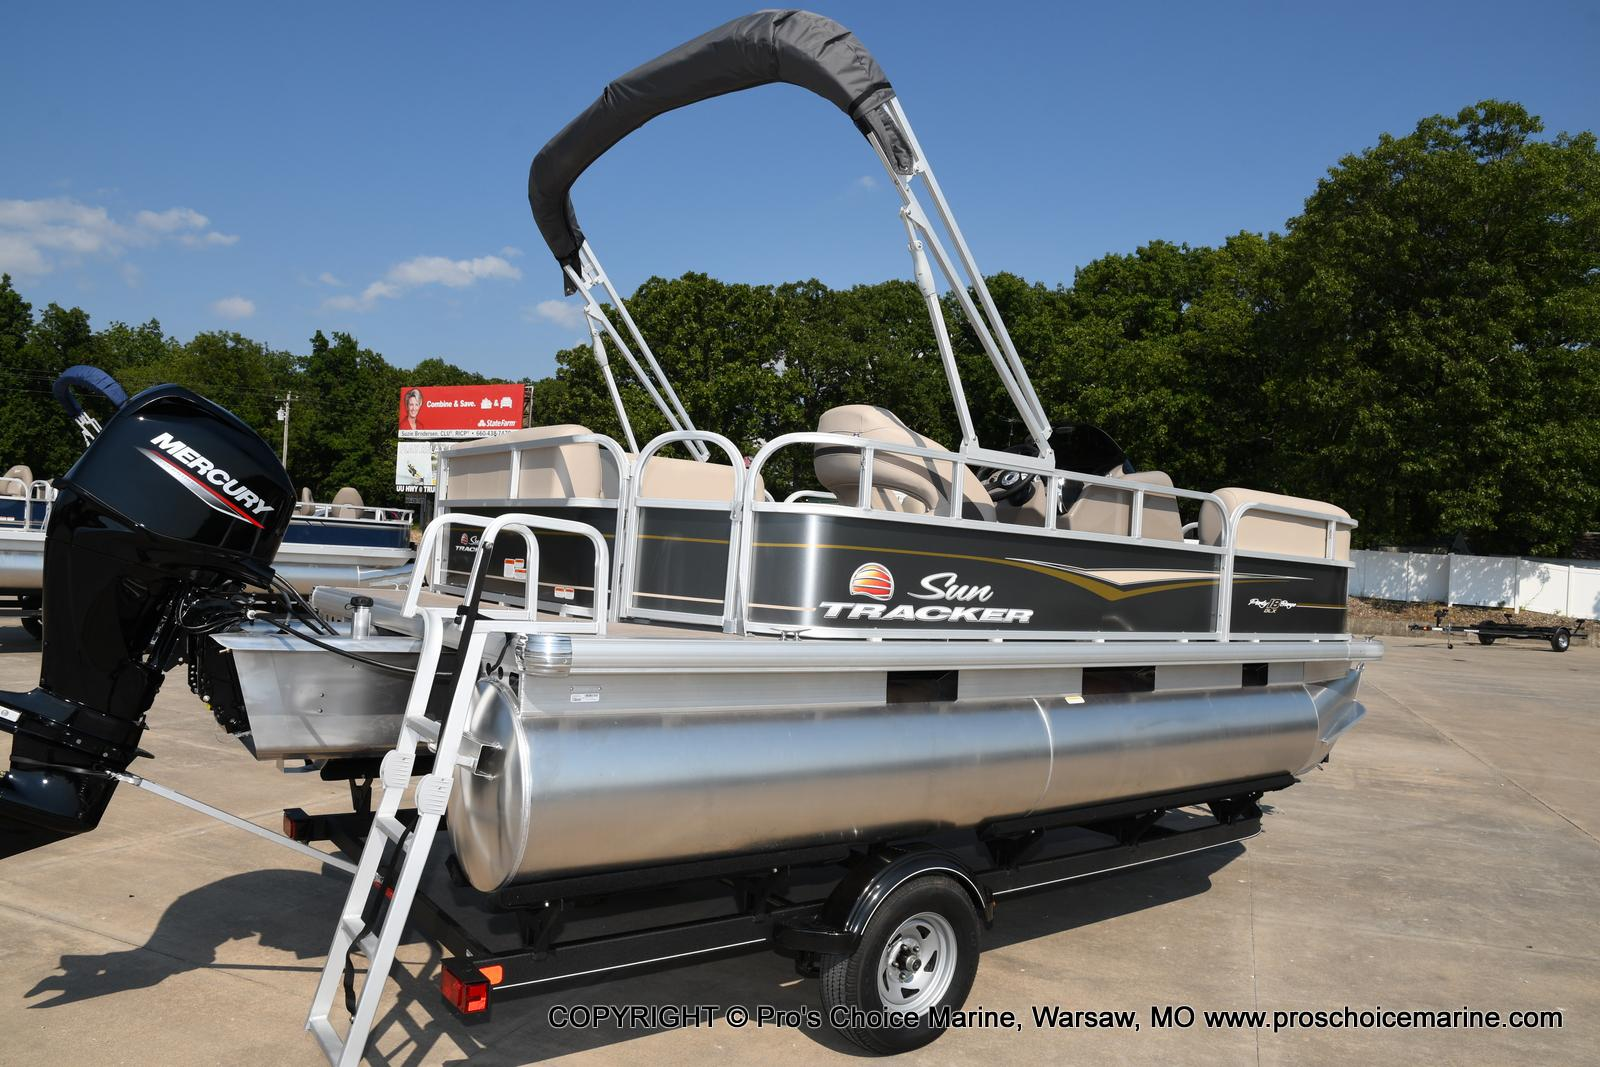 2021 Sun Tracker boat for sale, model of the boat is Party Barge 18 DLX & Image # 2 of 50